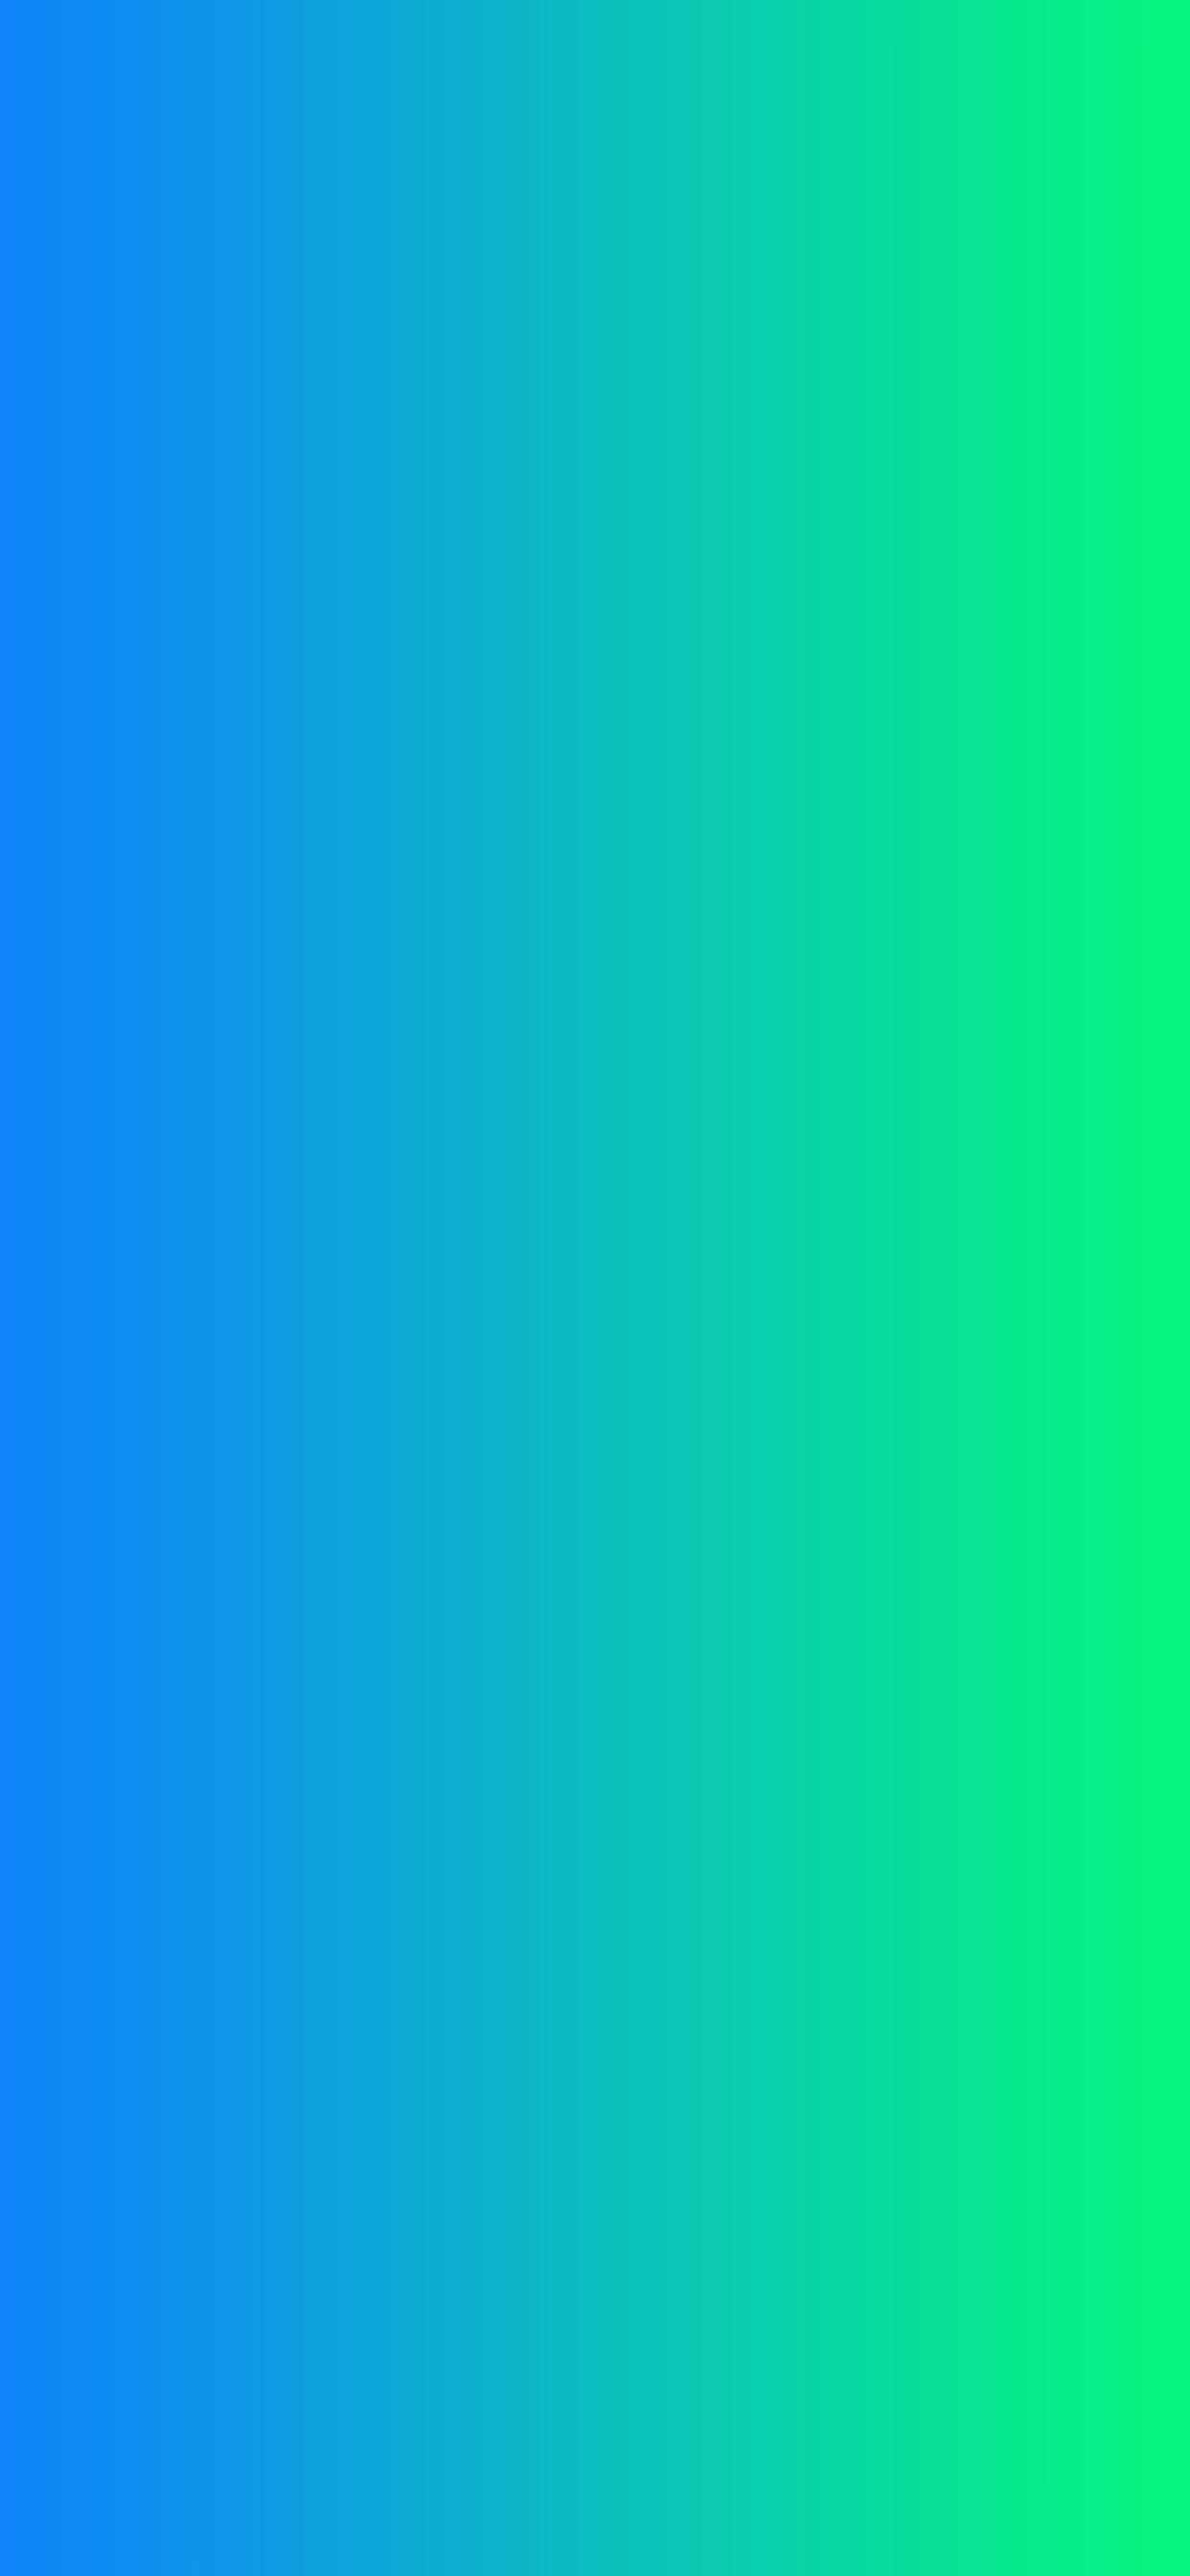 iPhone wallpaper gradient blue green Fonds d'écran iPhone du 10/01/2019